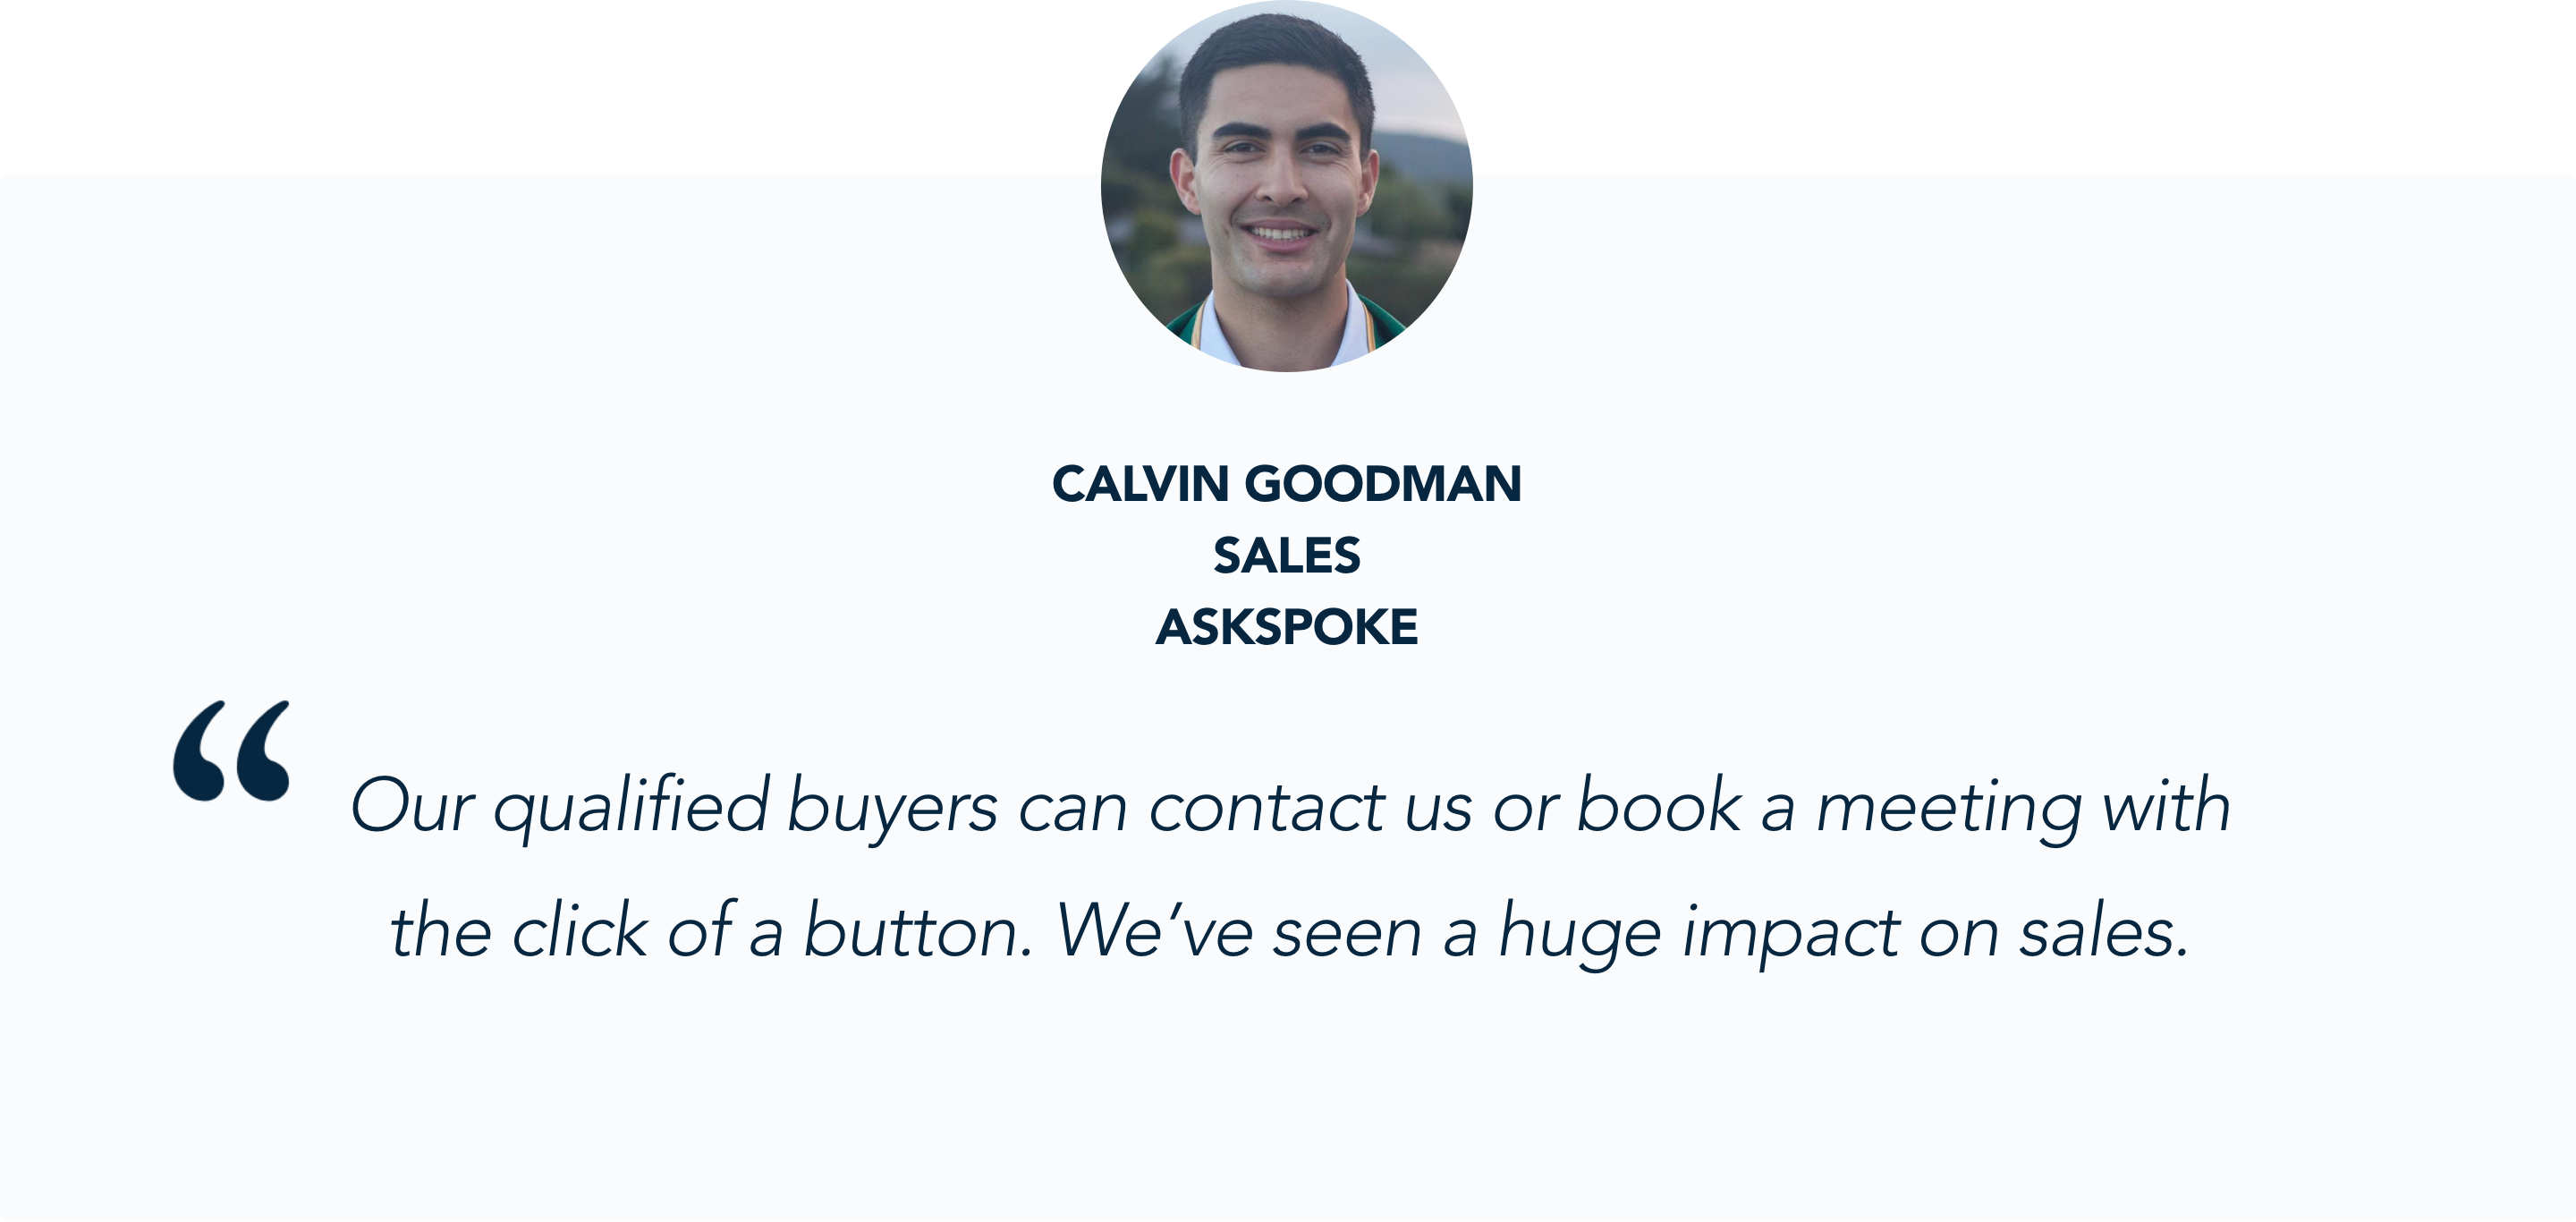 Calvin Goodman, Sales Development Rep at askSpoke, shares Conversational Marketing Success